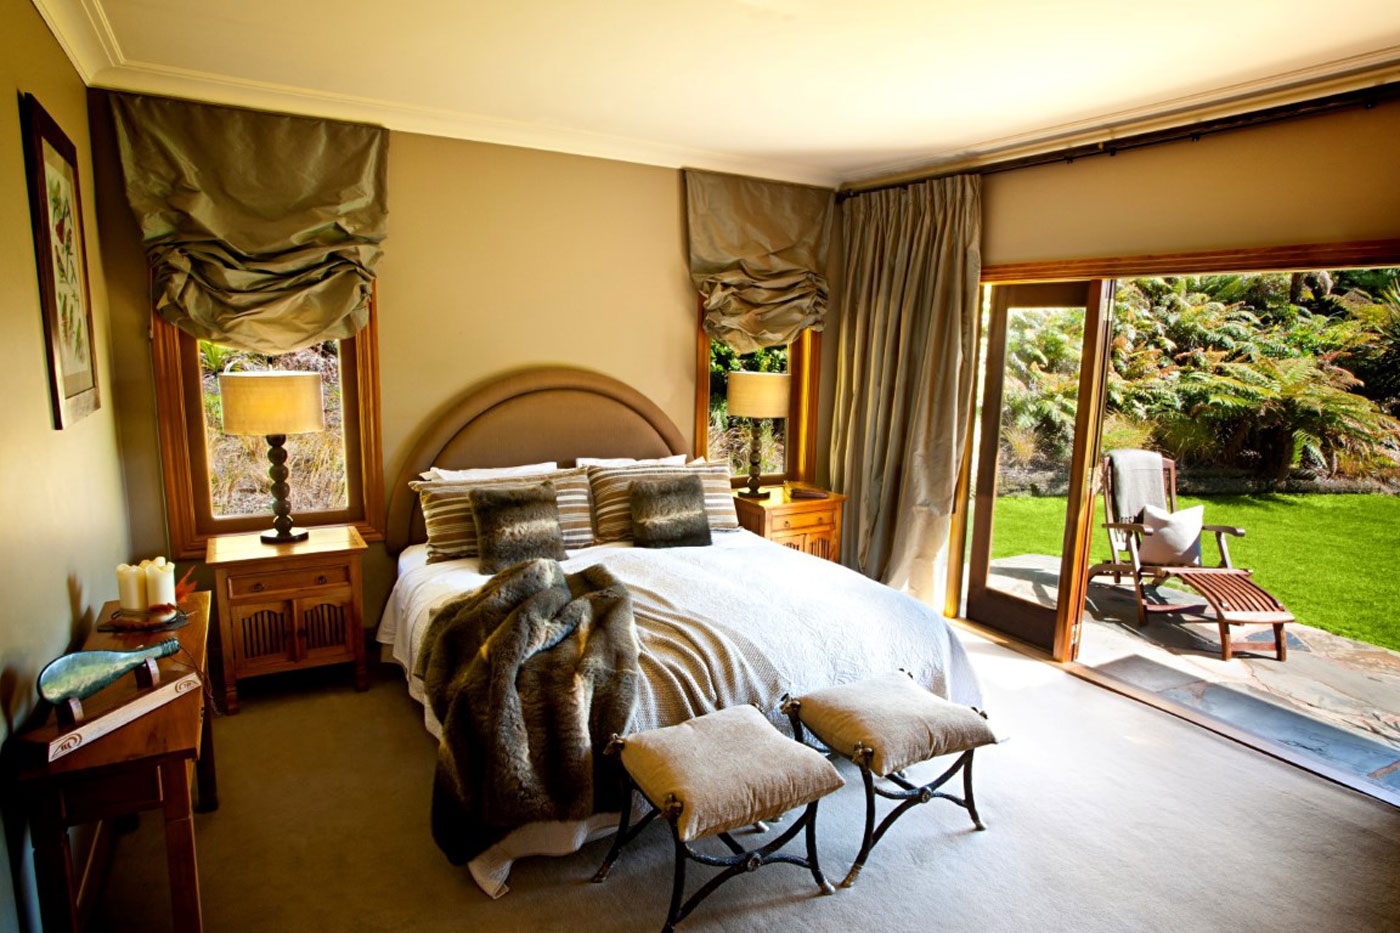 City Style and Living Magazine treetops lodge and estate room interior decor